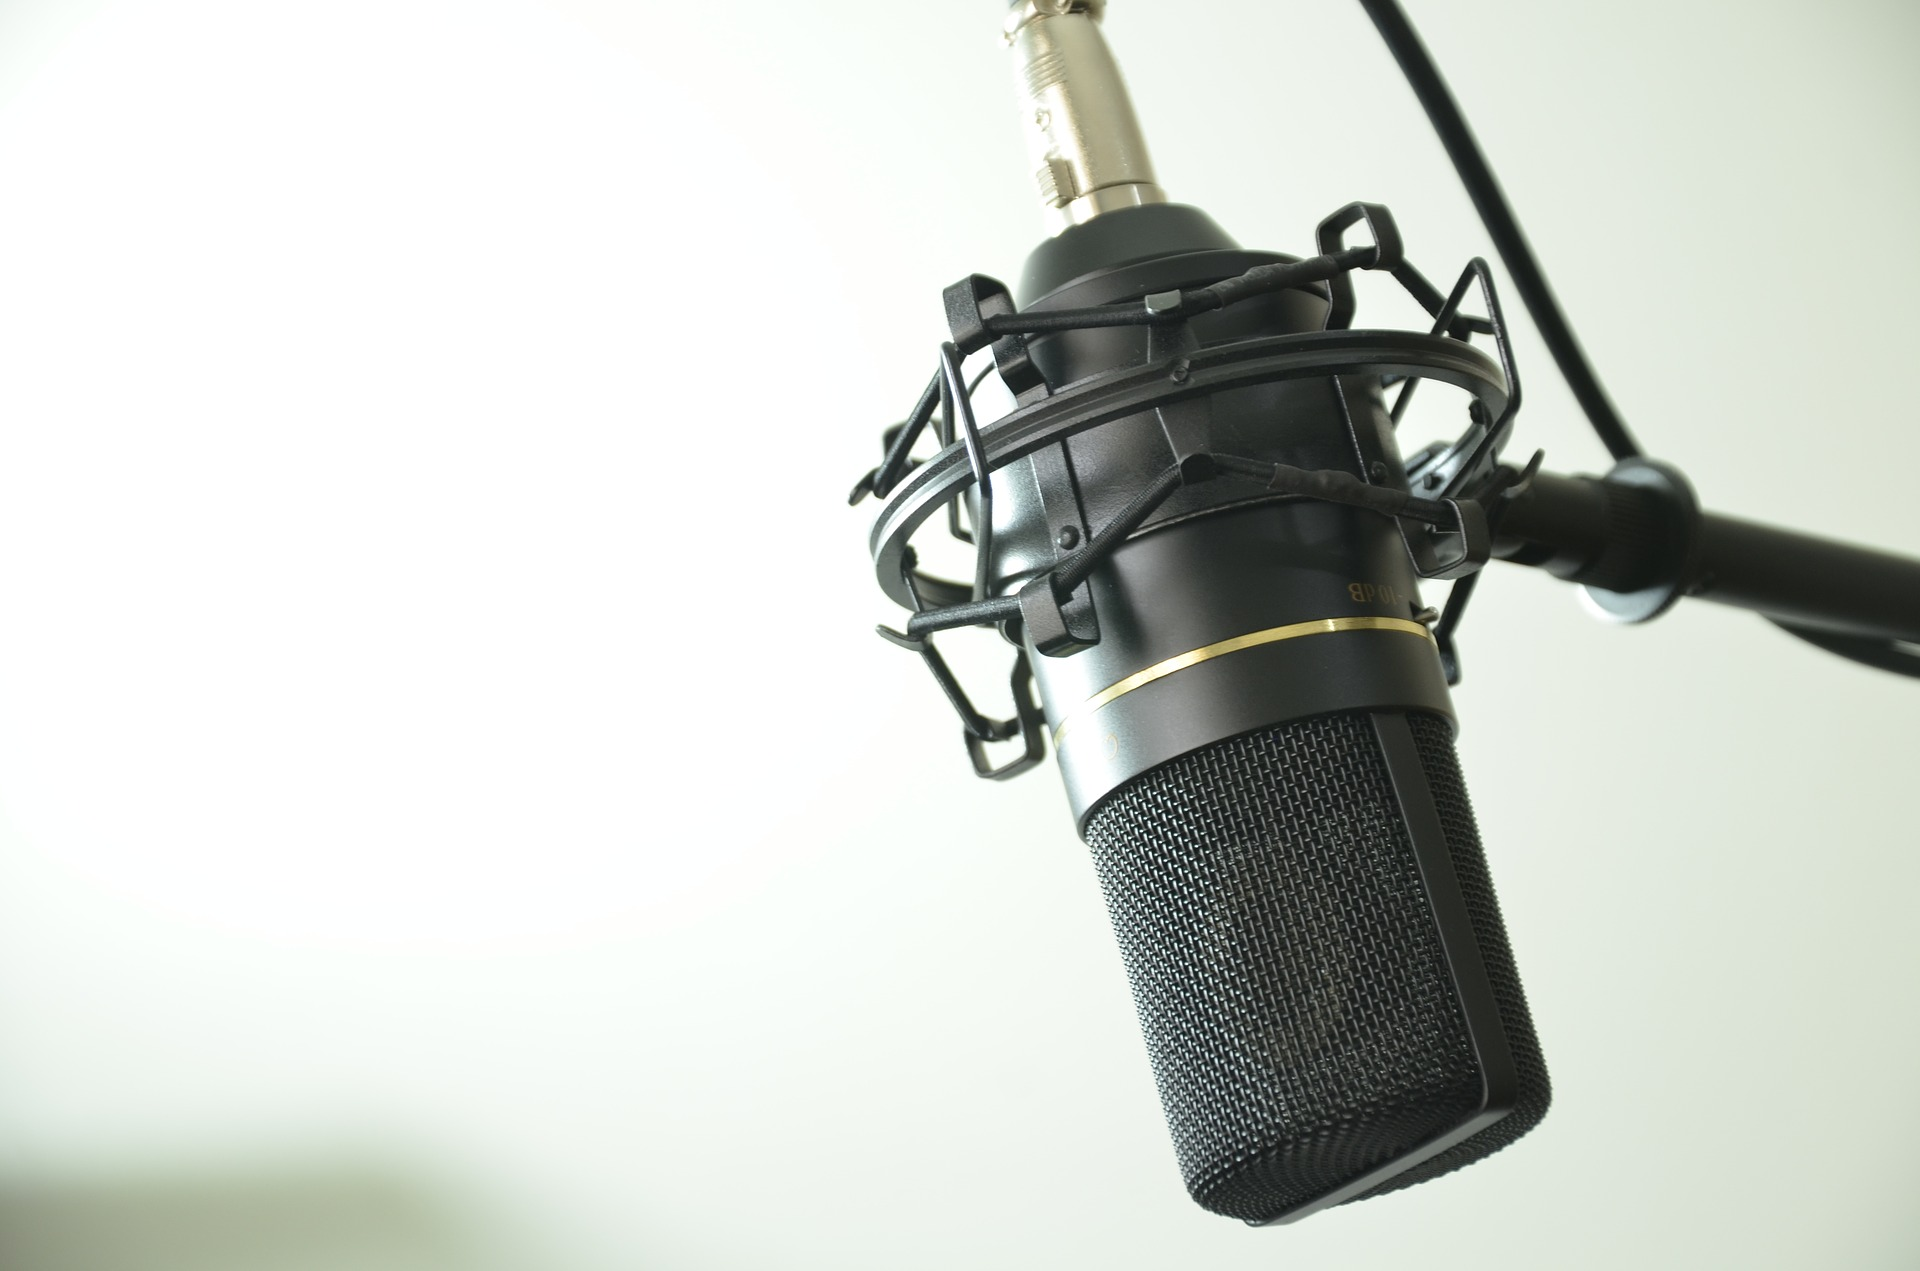 An in-depth review of the best microphones for streaming available in 2019.